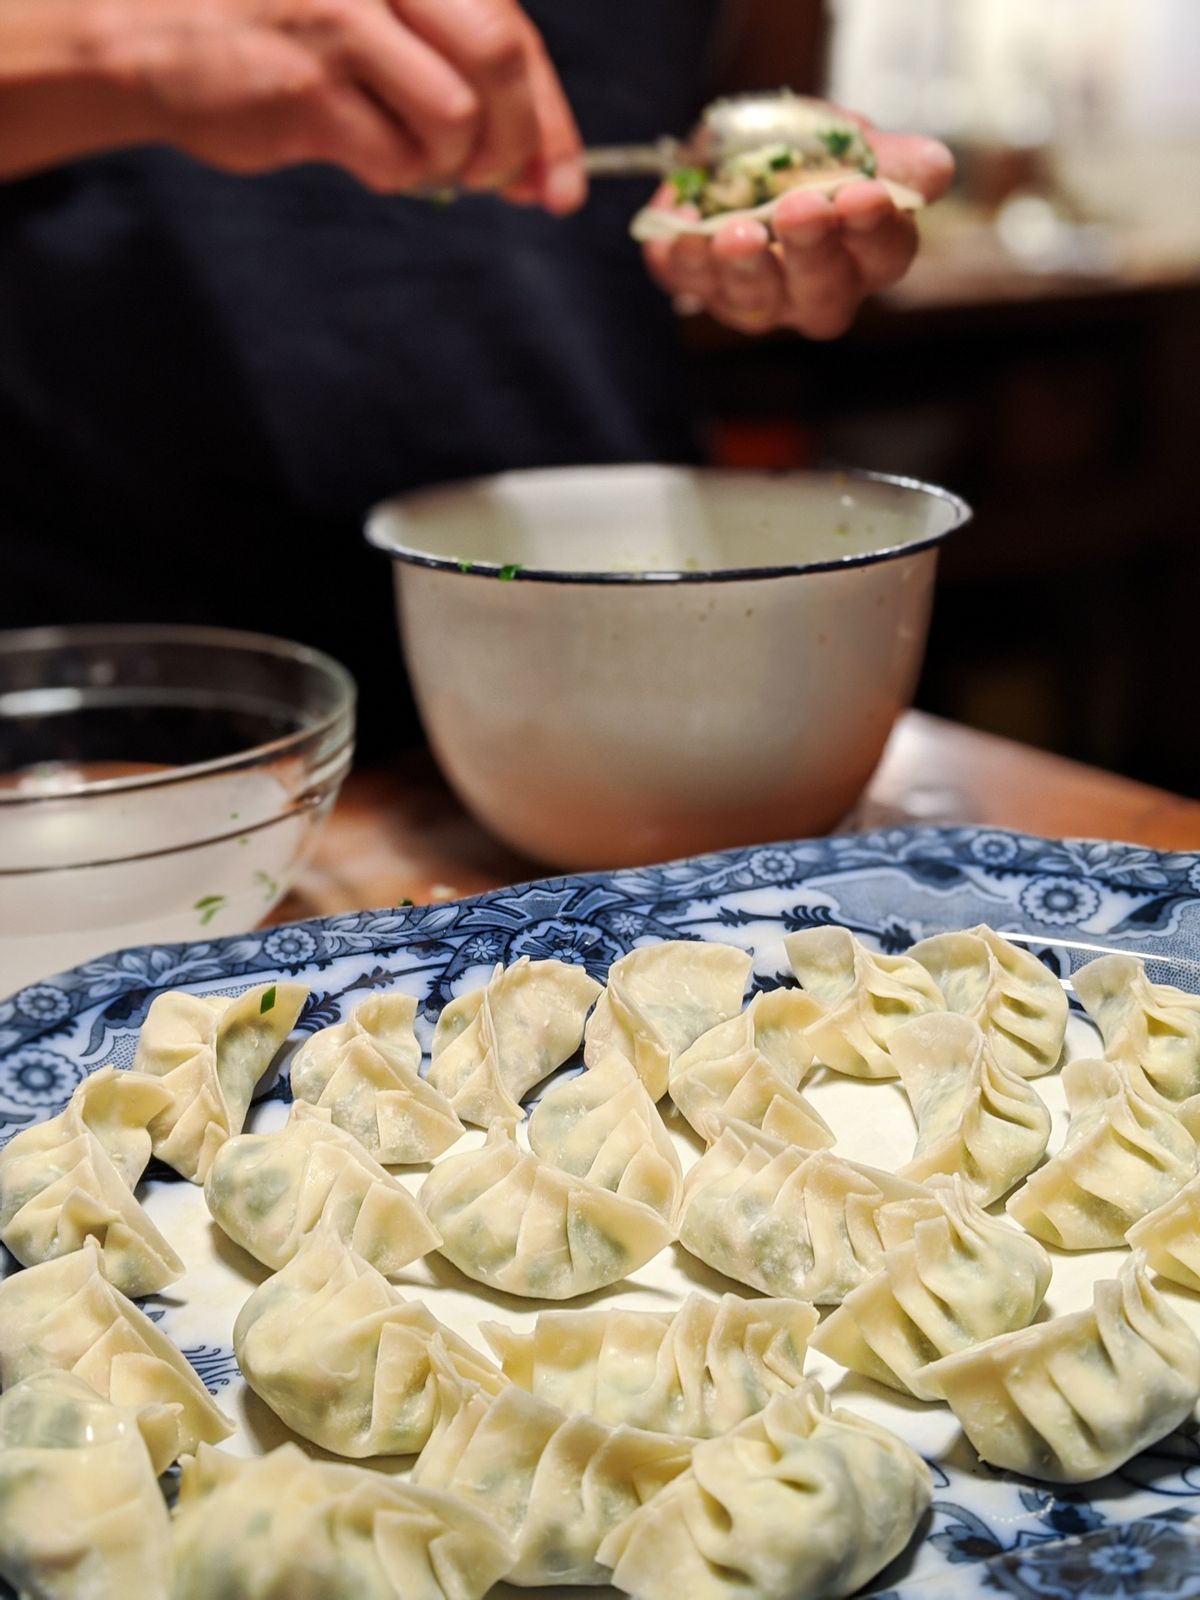 A plate of finished, uncooked dumplings with pleated edges